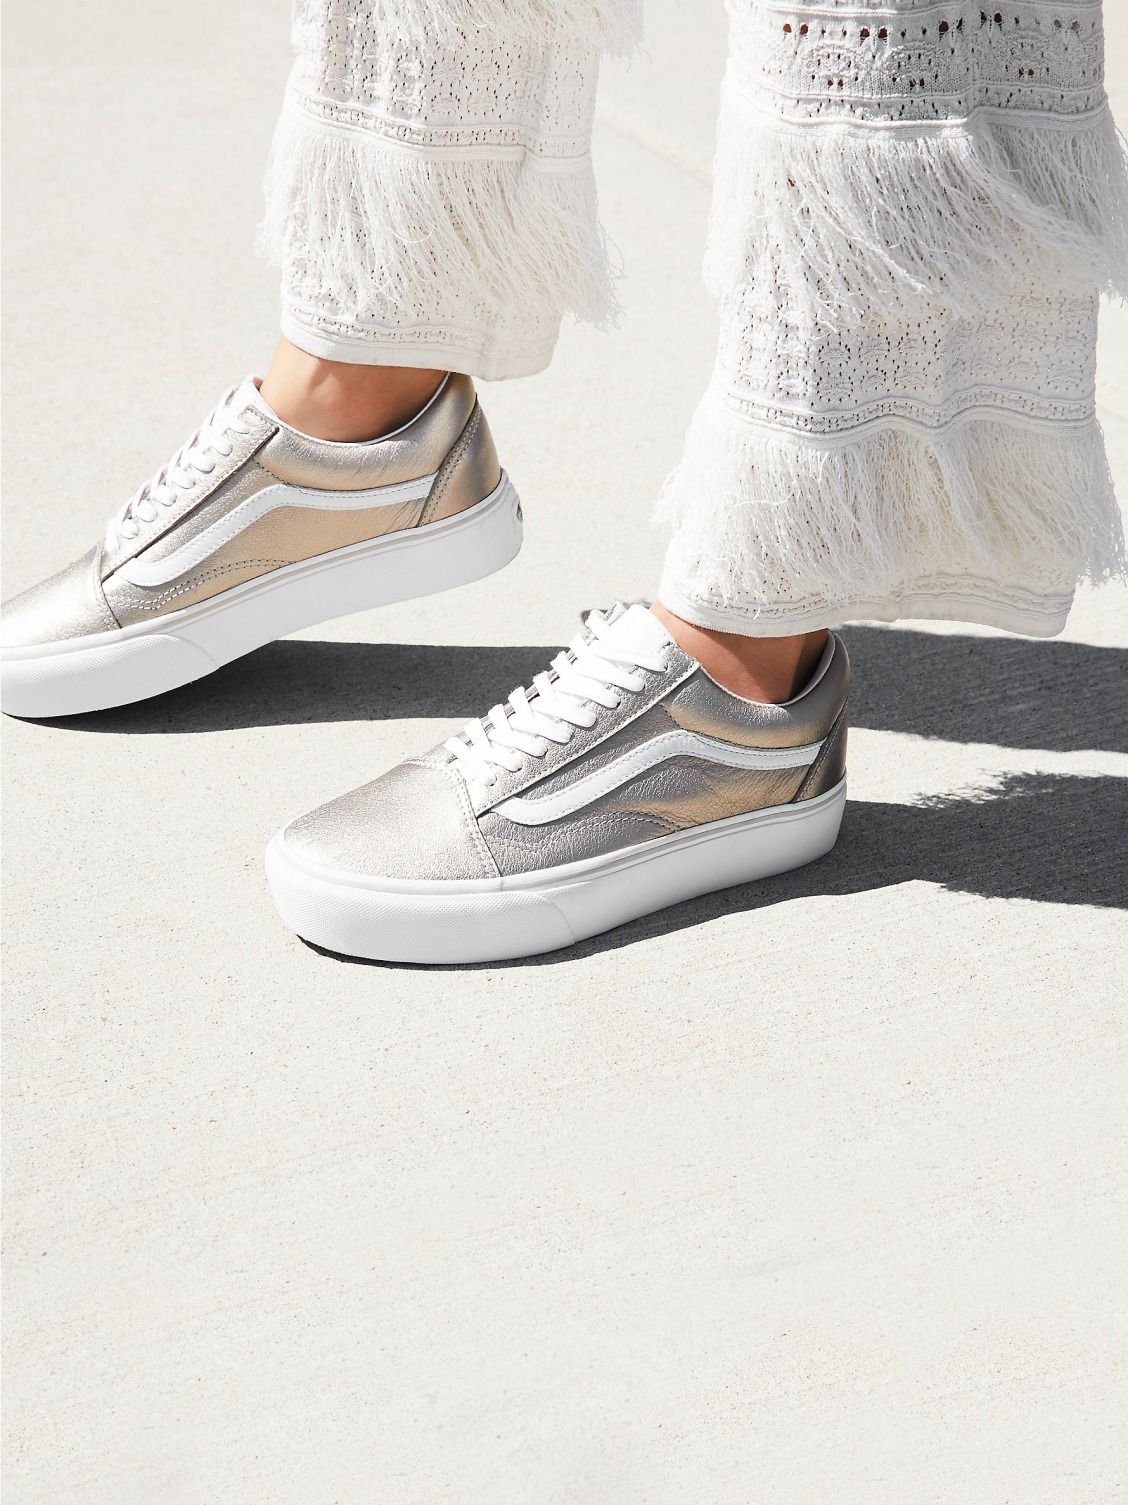 6646600969af Vans Grey Gold Old Skool Platform Sneaker at Free People Clothing Boutique